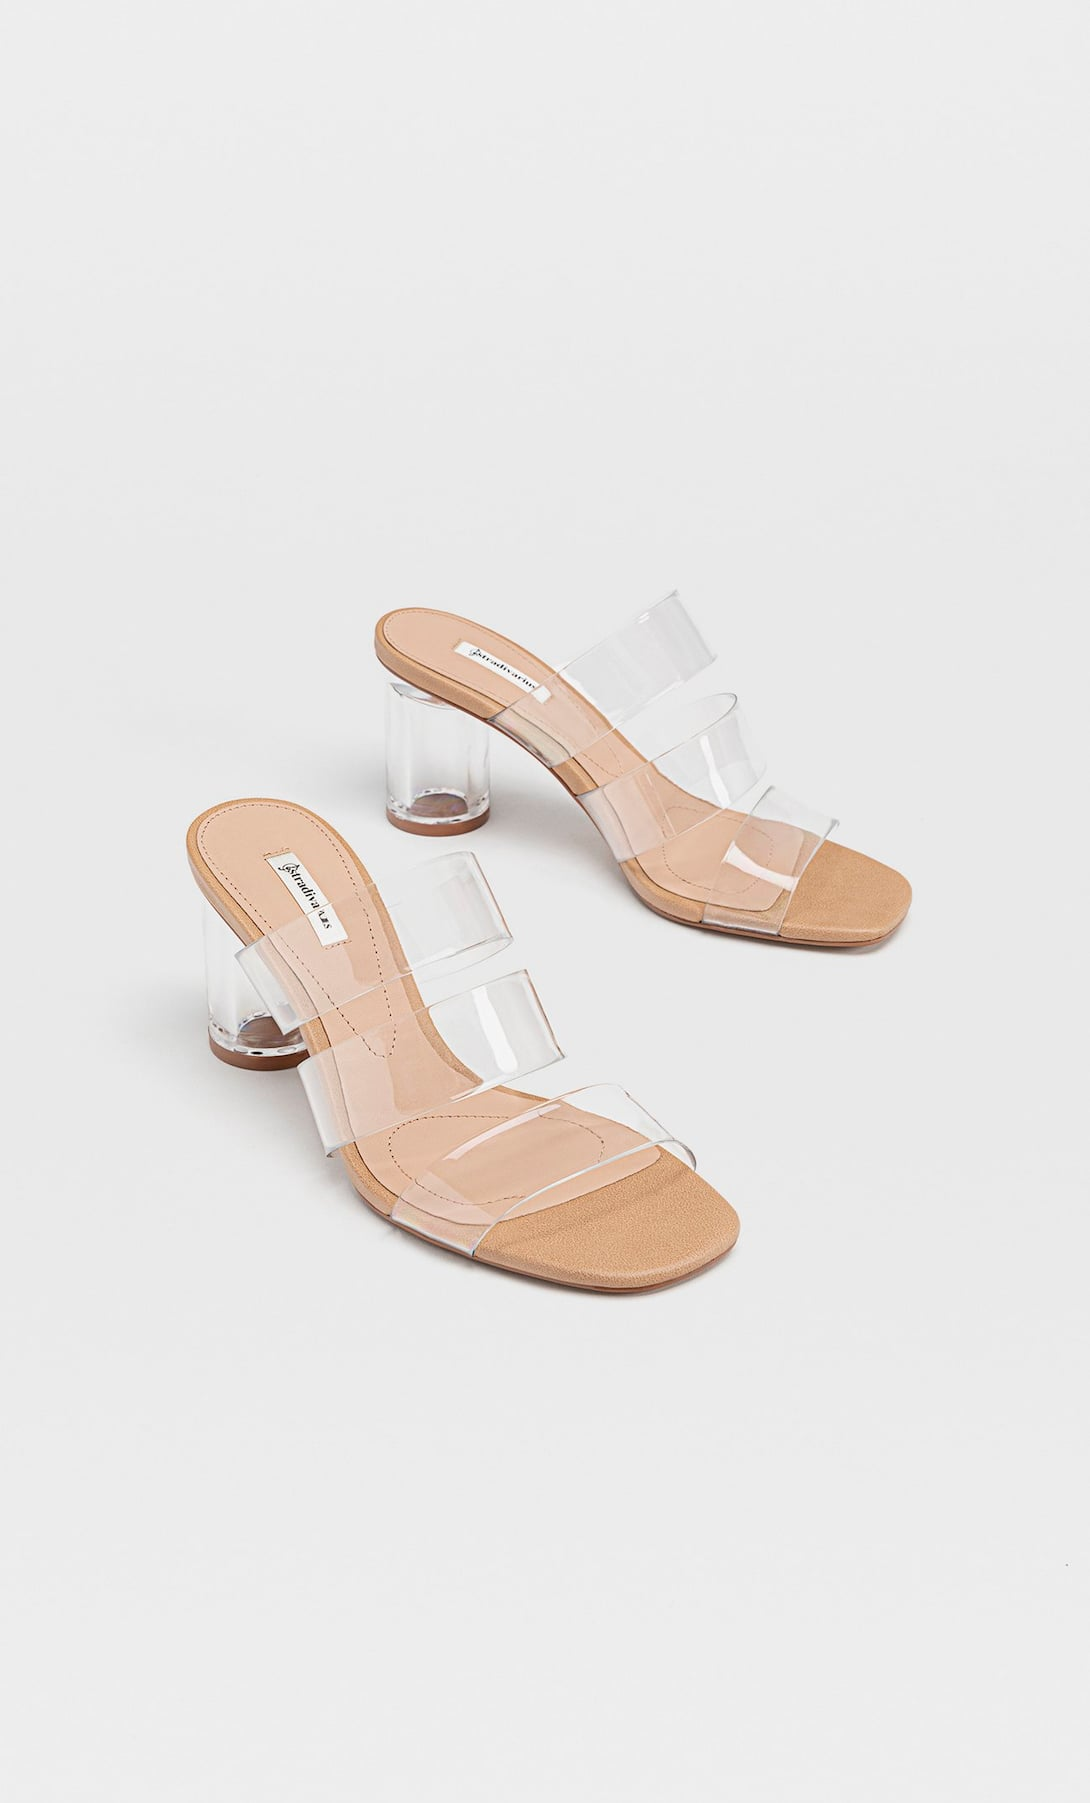 Giày mules trong suốt Stradivarius